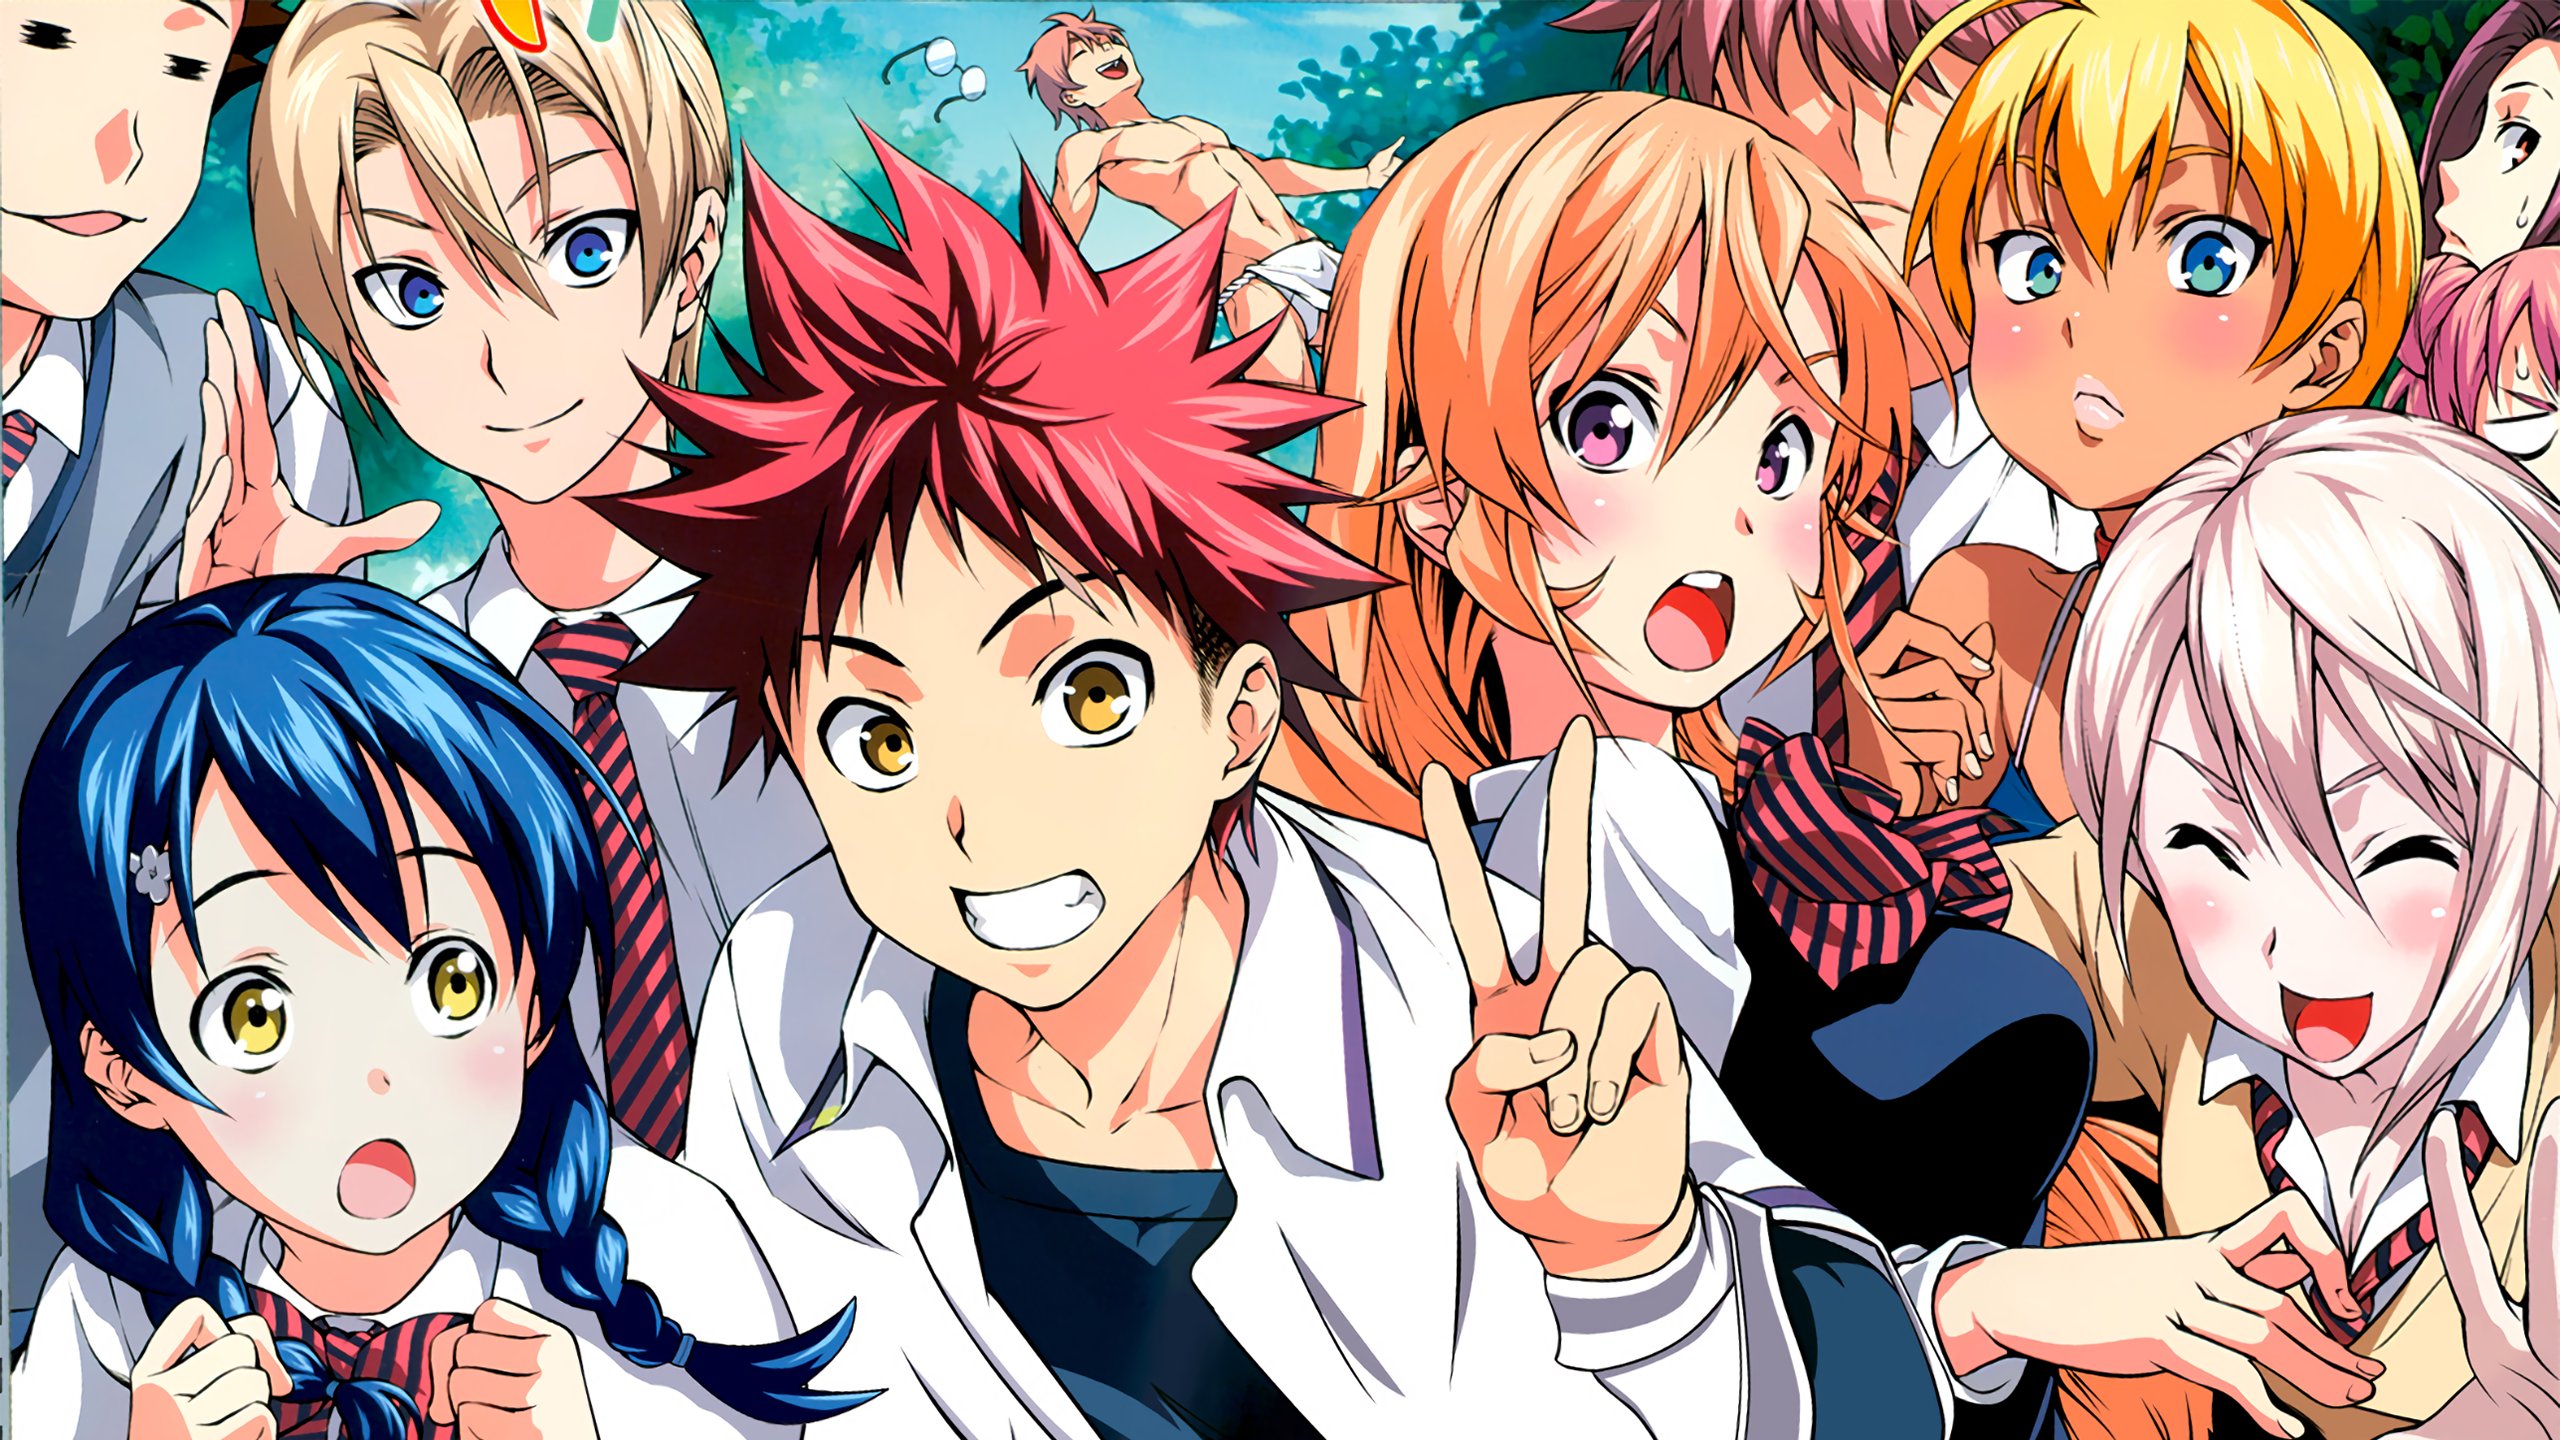 Food Wars Season 5 Episode 3 Release Date